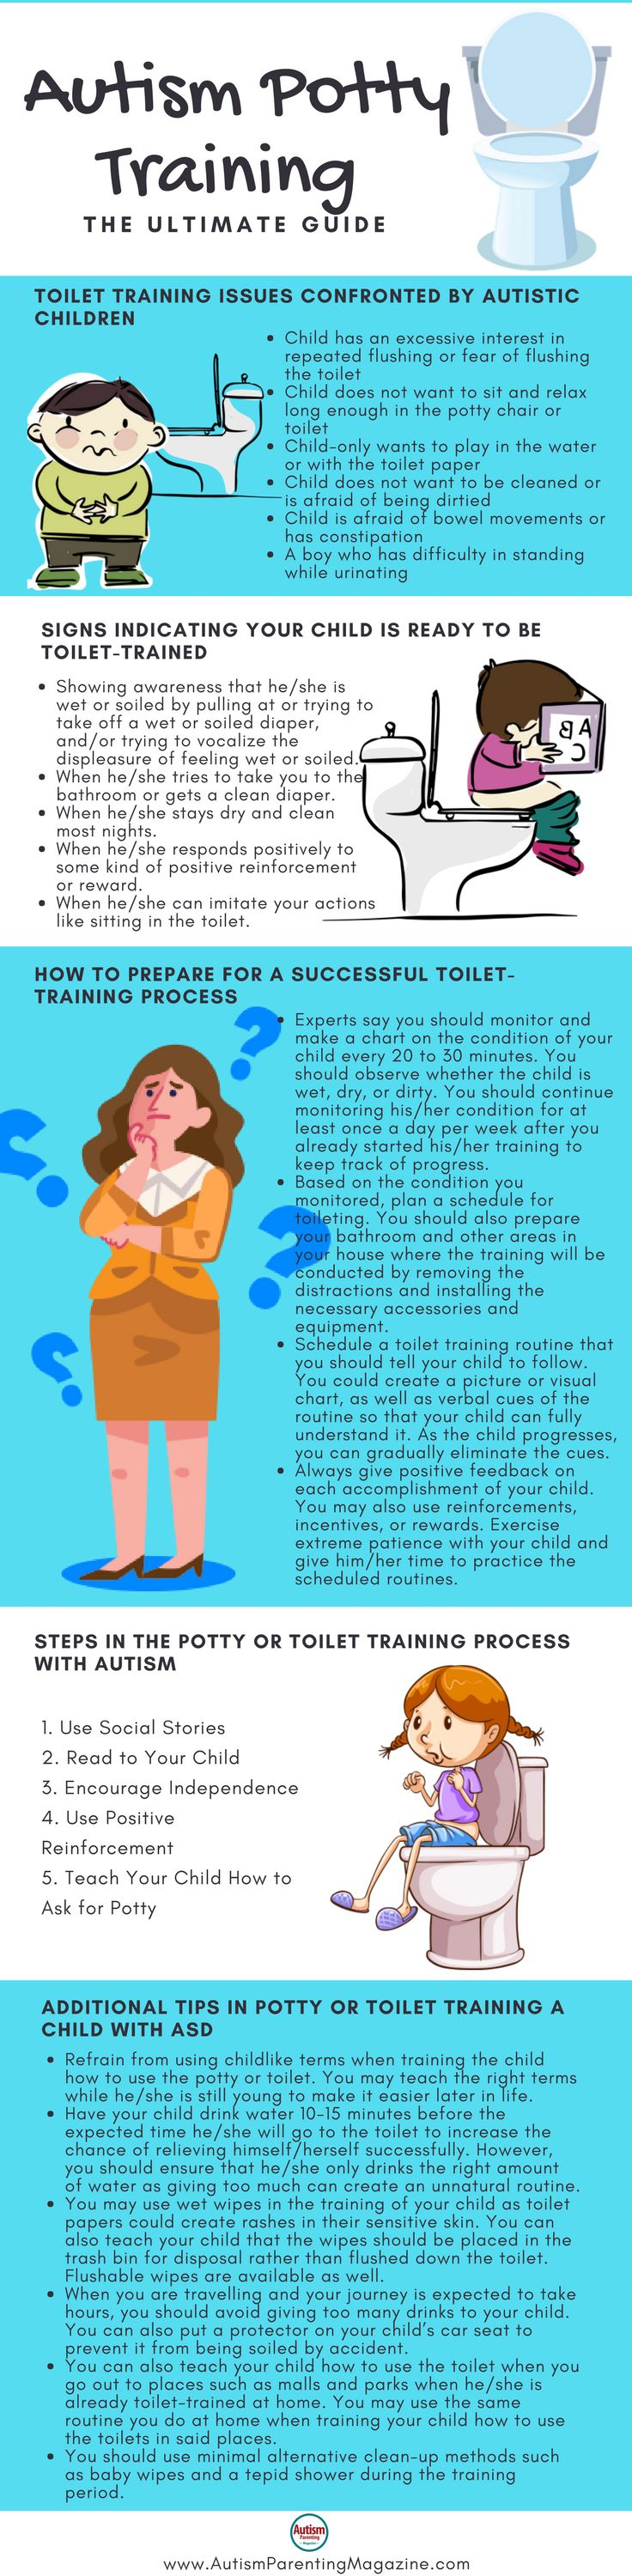 Some kids need a little more help with big steps like toilet training. This guide helps navigate some of those issues